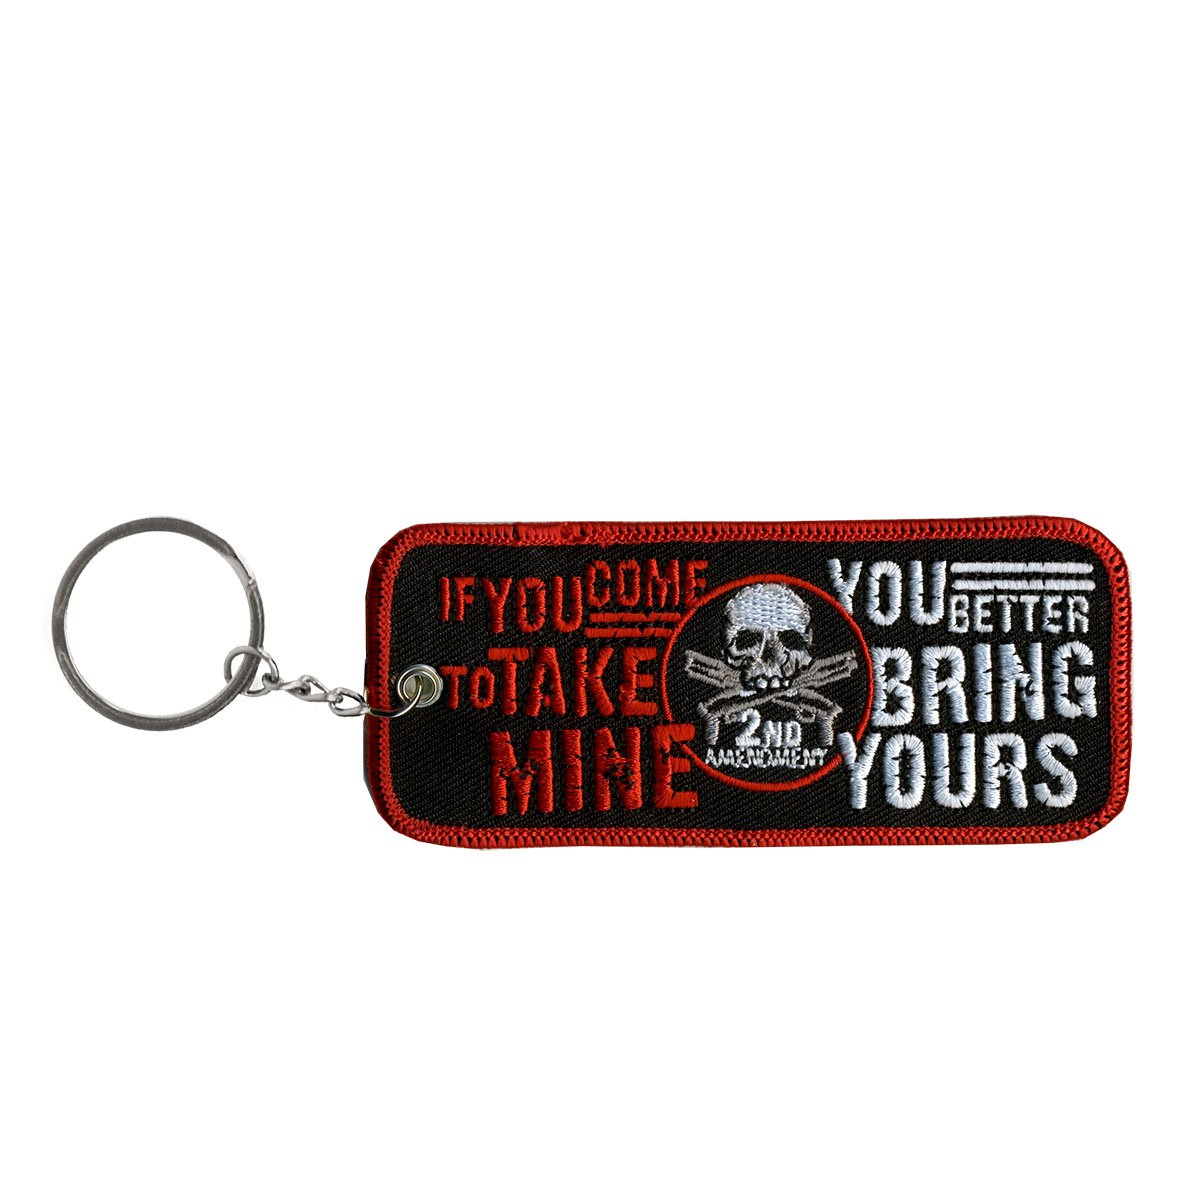 Hot Leathers Double Sided Key Chains, IF YOUR COME TO TAKE MINE - High Quality Embroidered PATCH KEYCHAIN - 4